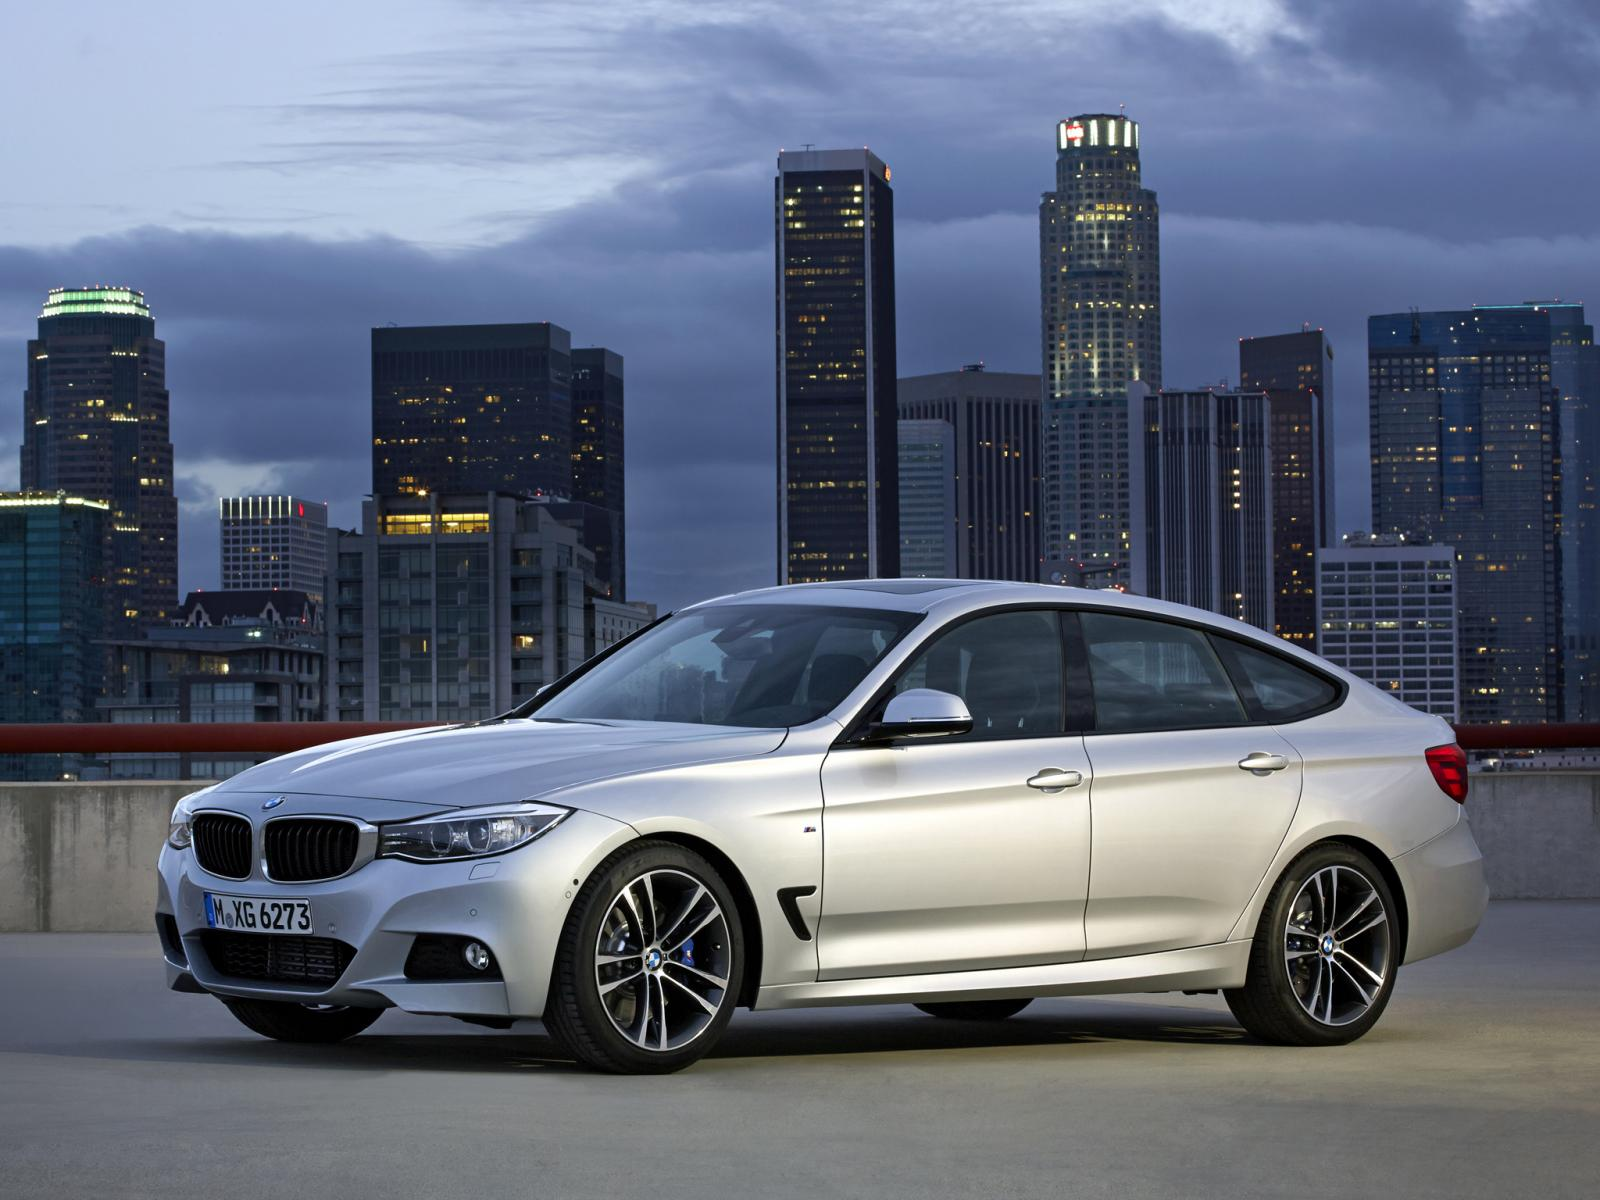 bmw 3 series gt unveiled ahead of geneva show debut. Black Bedroom Furniture Sets. Home Design Ideas